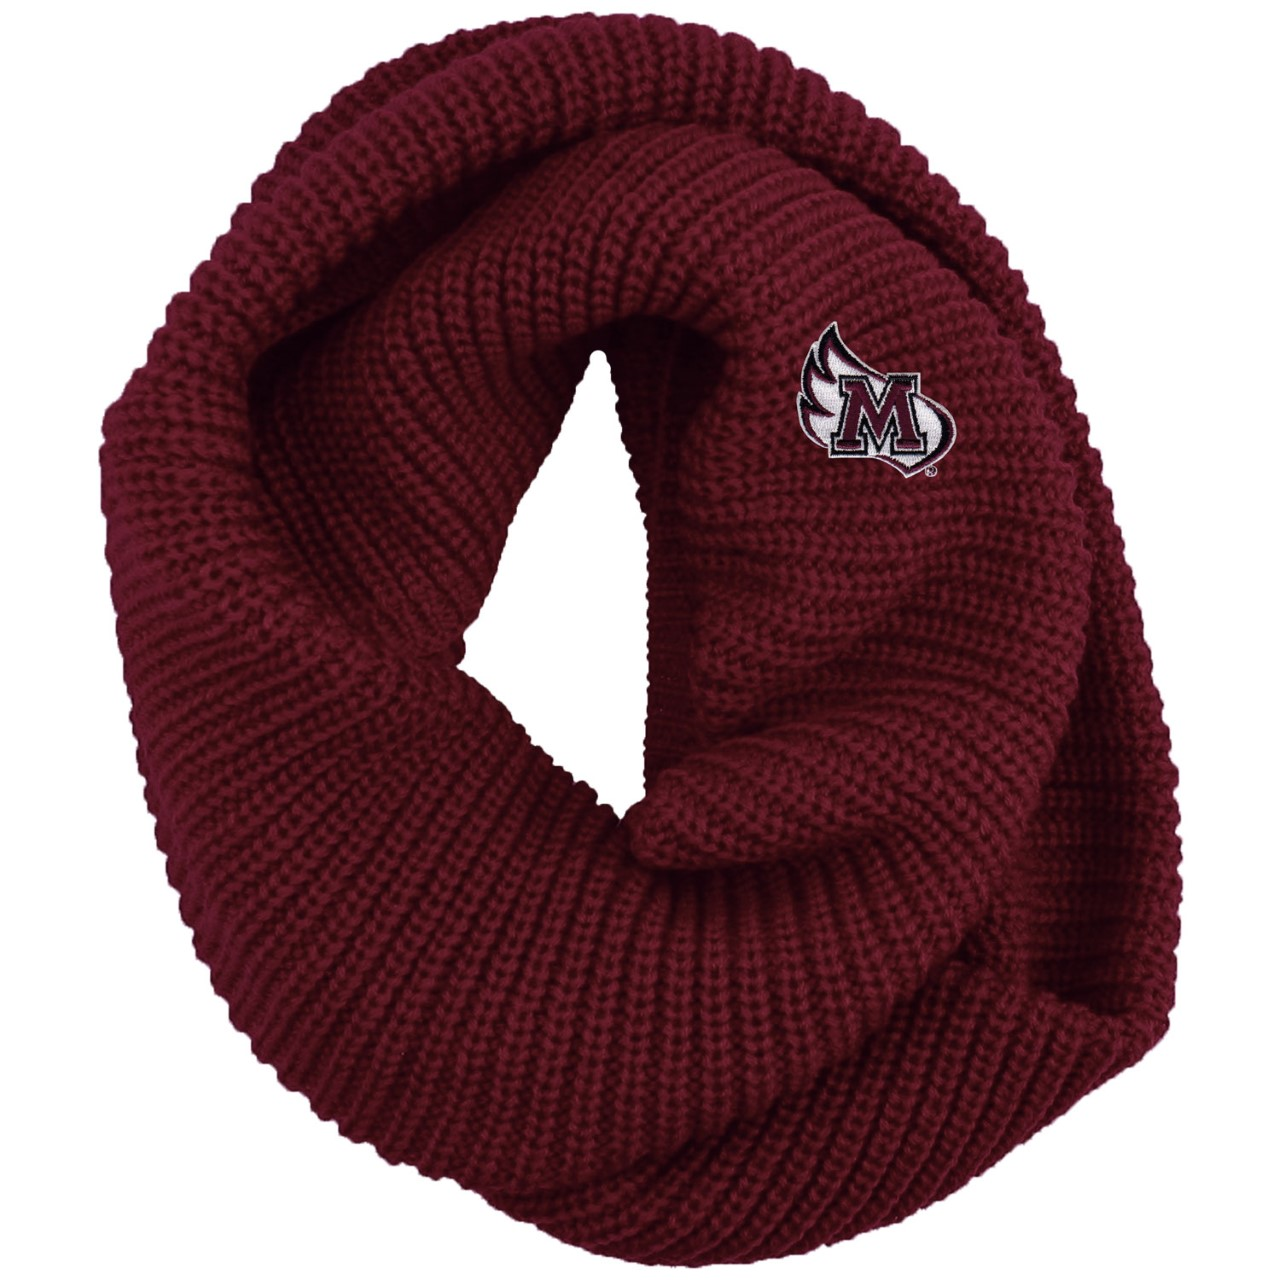 Image for the Chunky Knit Infinity Scarf, Burgundy product